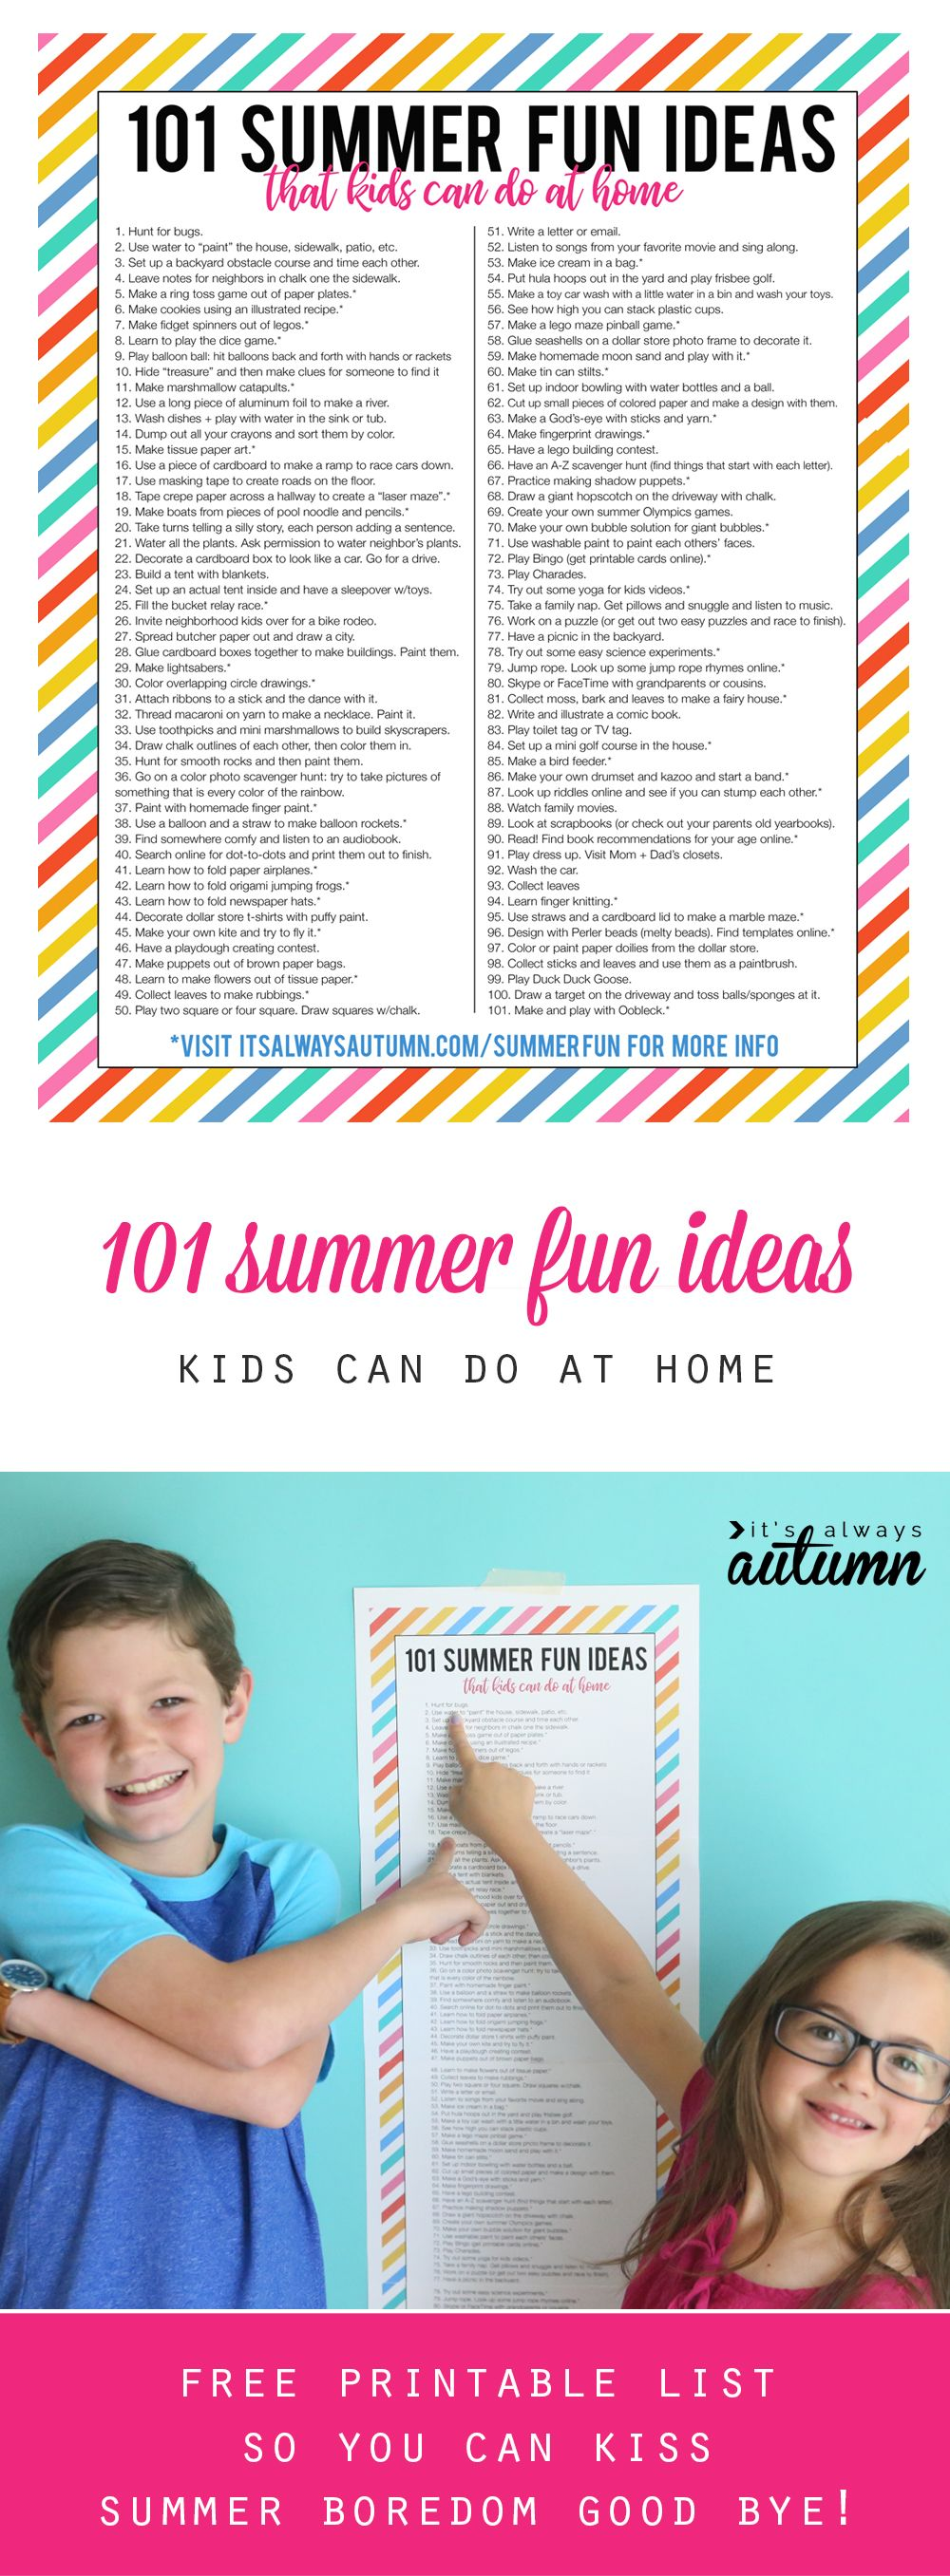 101 summer fun ideas that kids can do at home | Everything for kids ...